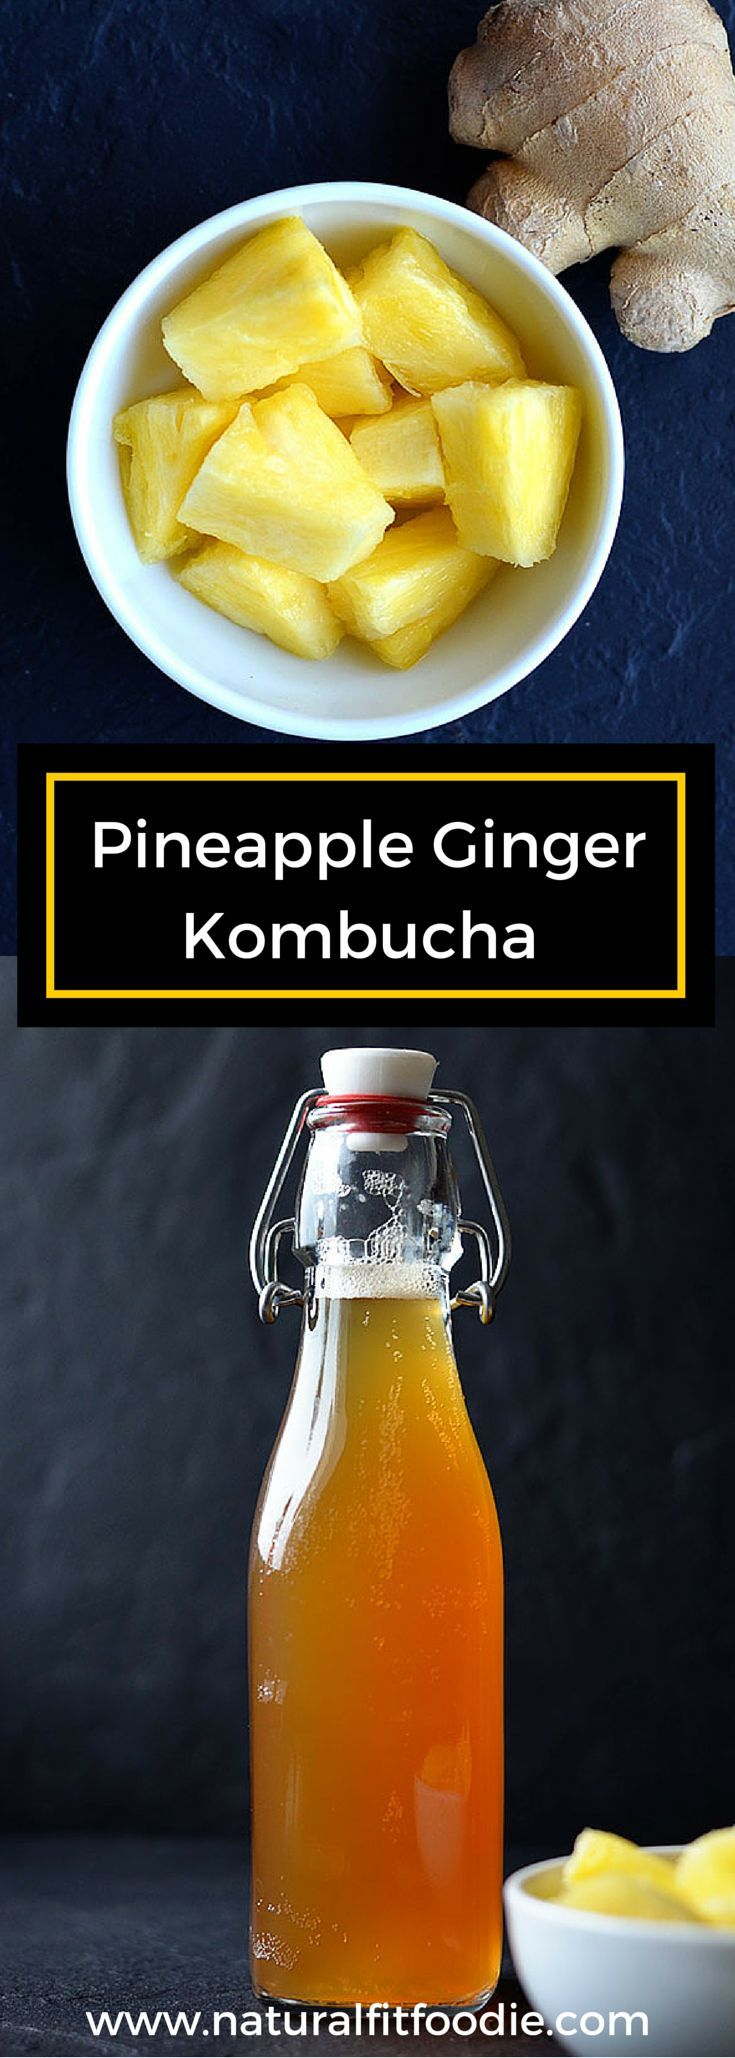 How to flavor Kombucha